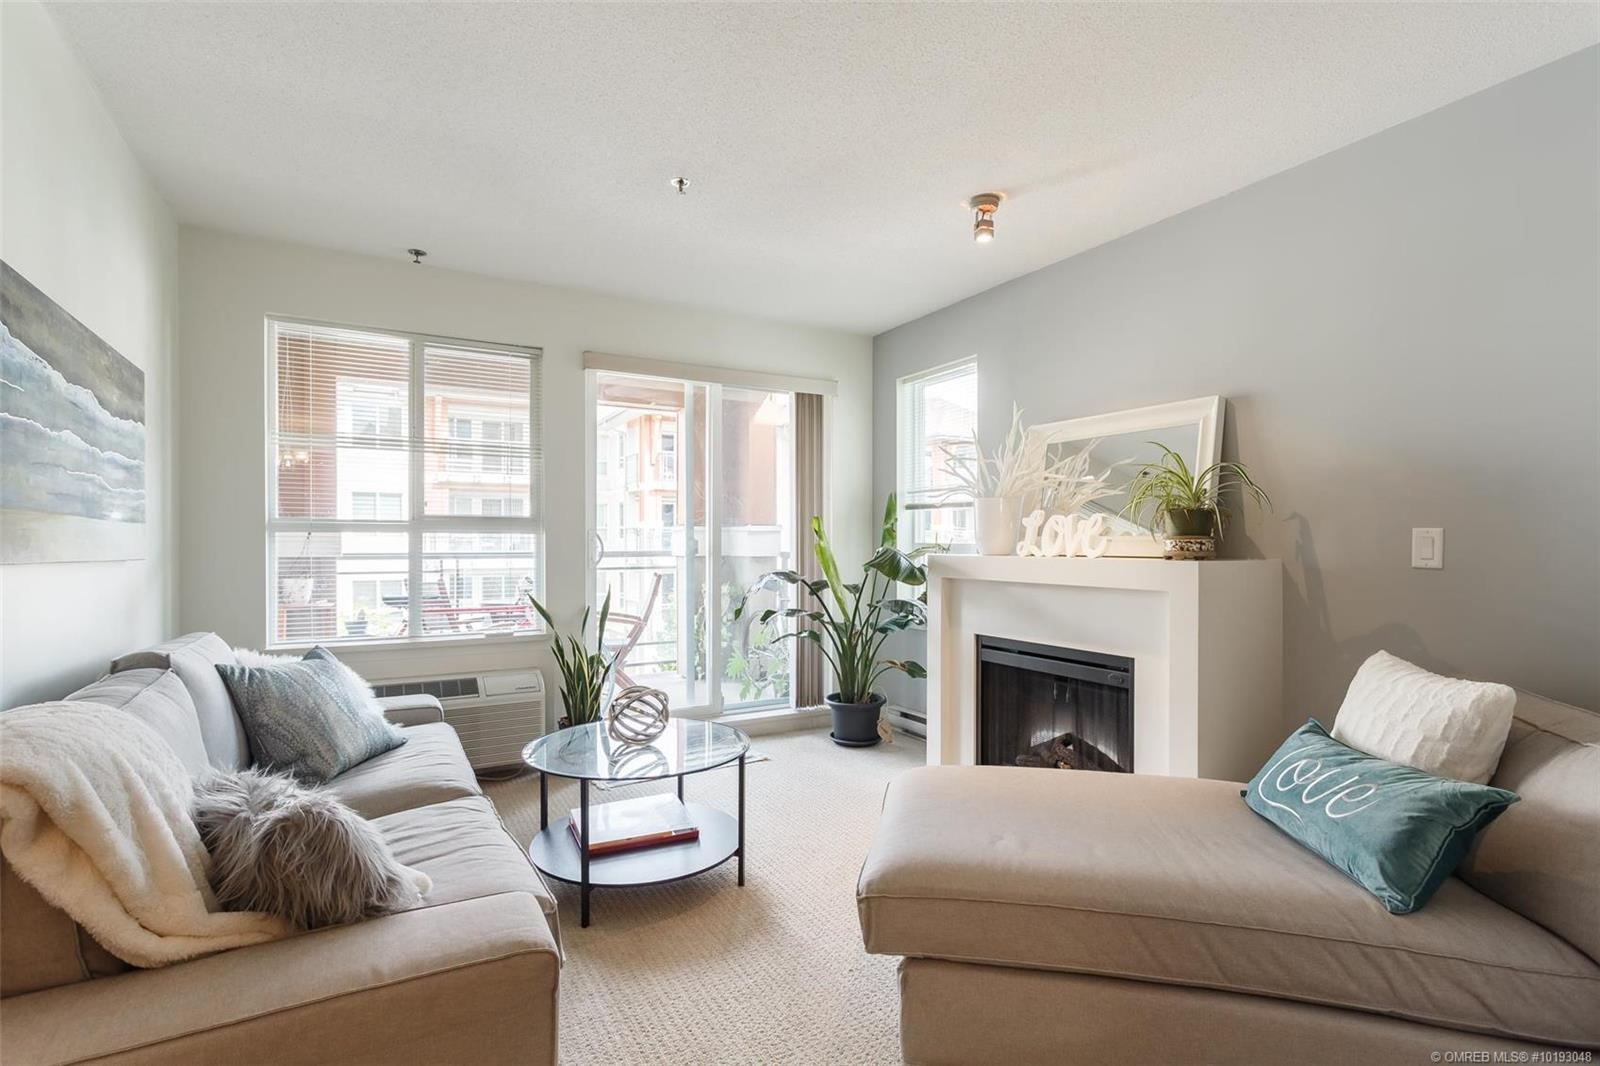 Removed: 338 - 1099 Sunset Drive, Kelowna, BC - Removed on 2019-12-03 06:06:01